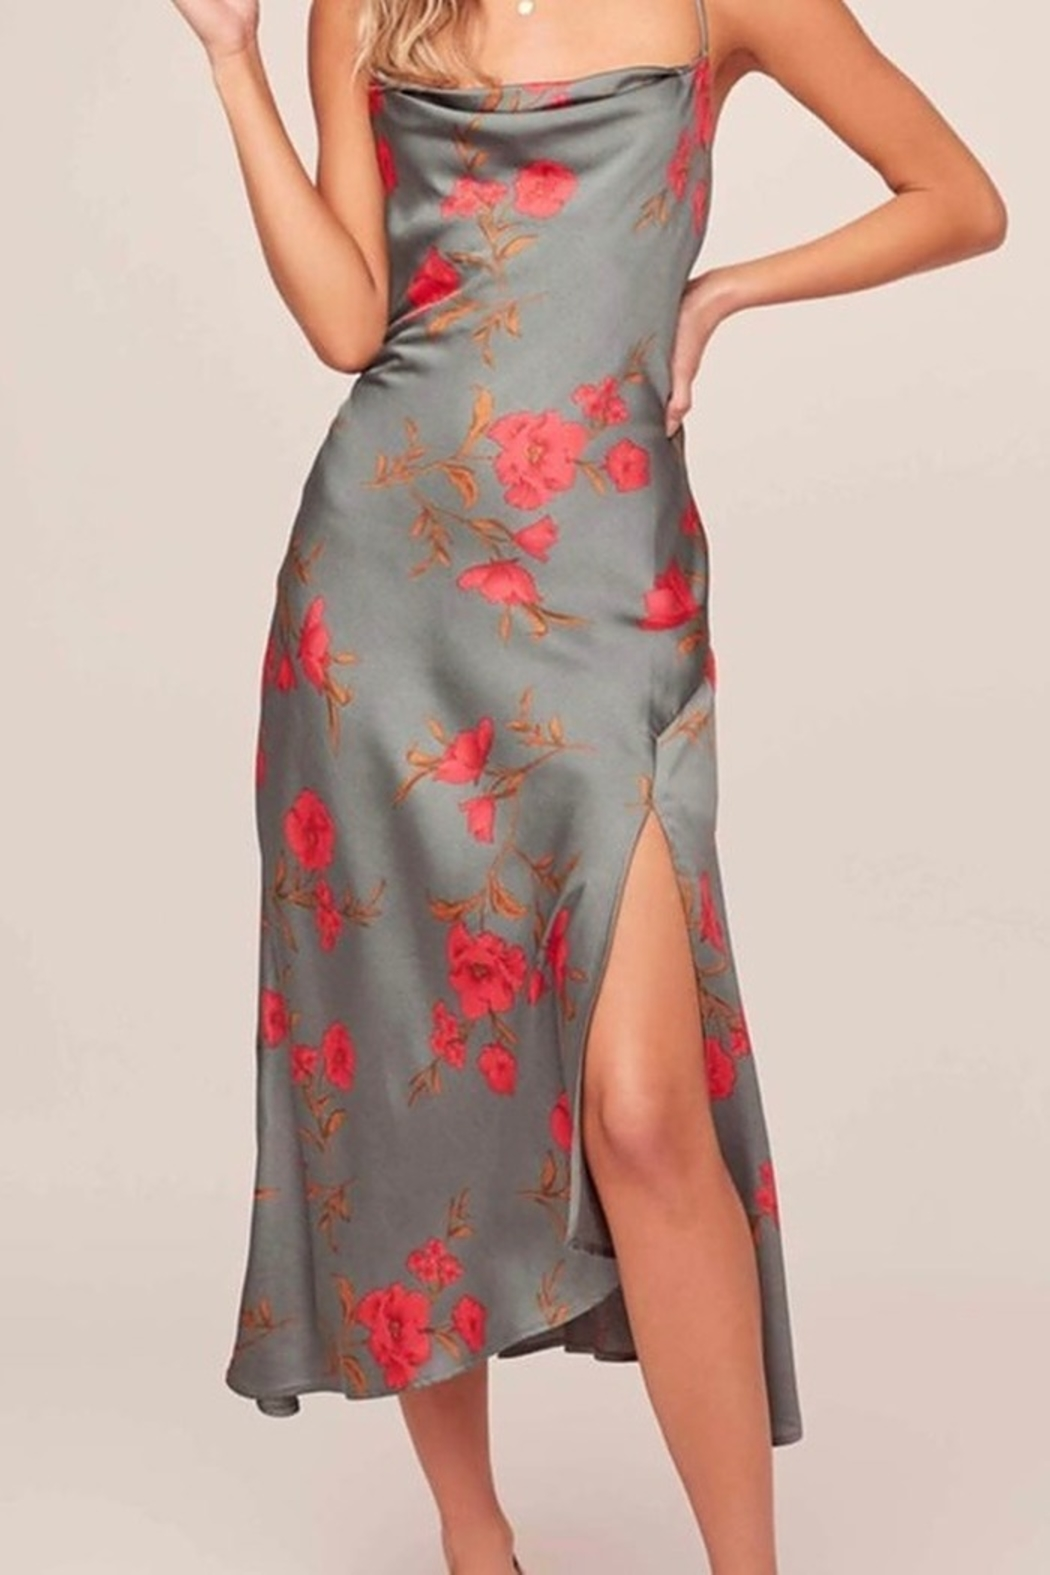 ASTR DREAM GIRL DRESS - Front Full Image